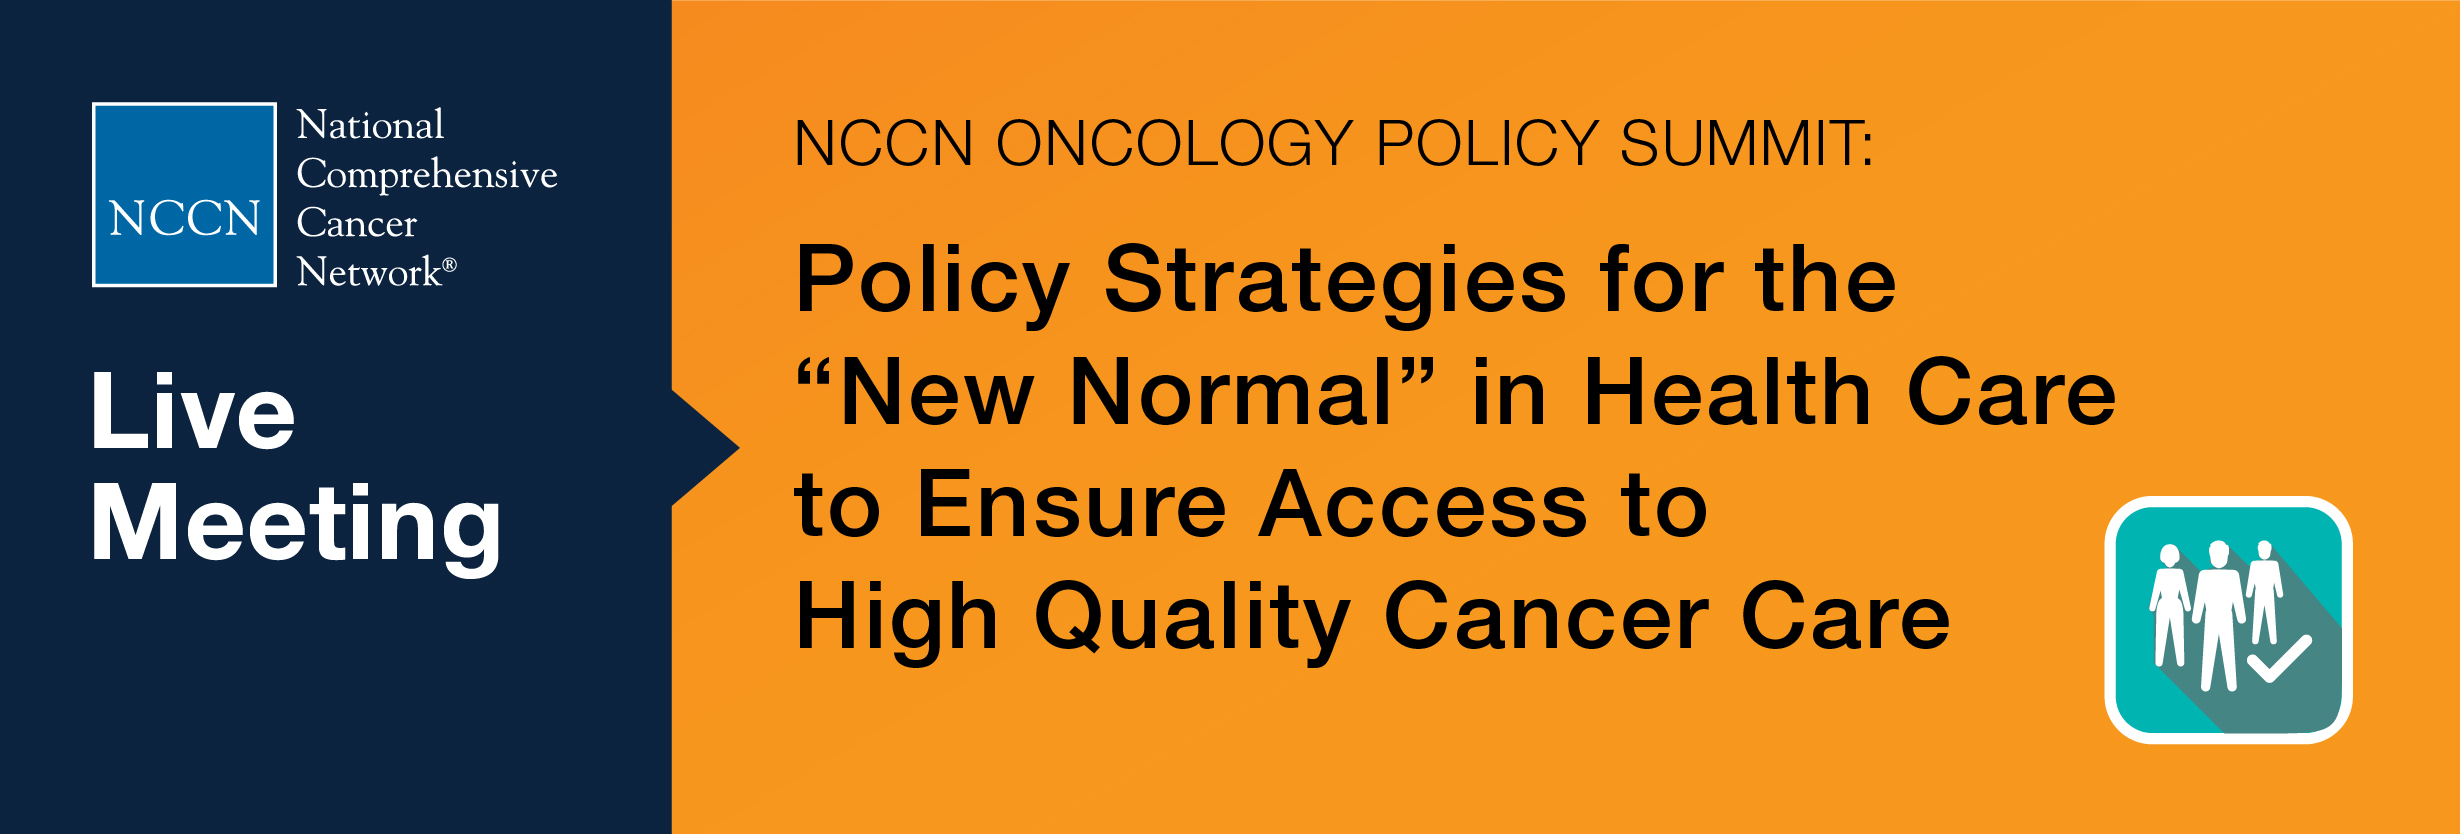 "NCCN Policy Summit: Policy Strategies for the ""New Normal"" in Health Care to Ensure Access to High Quality Cancer Care"